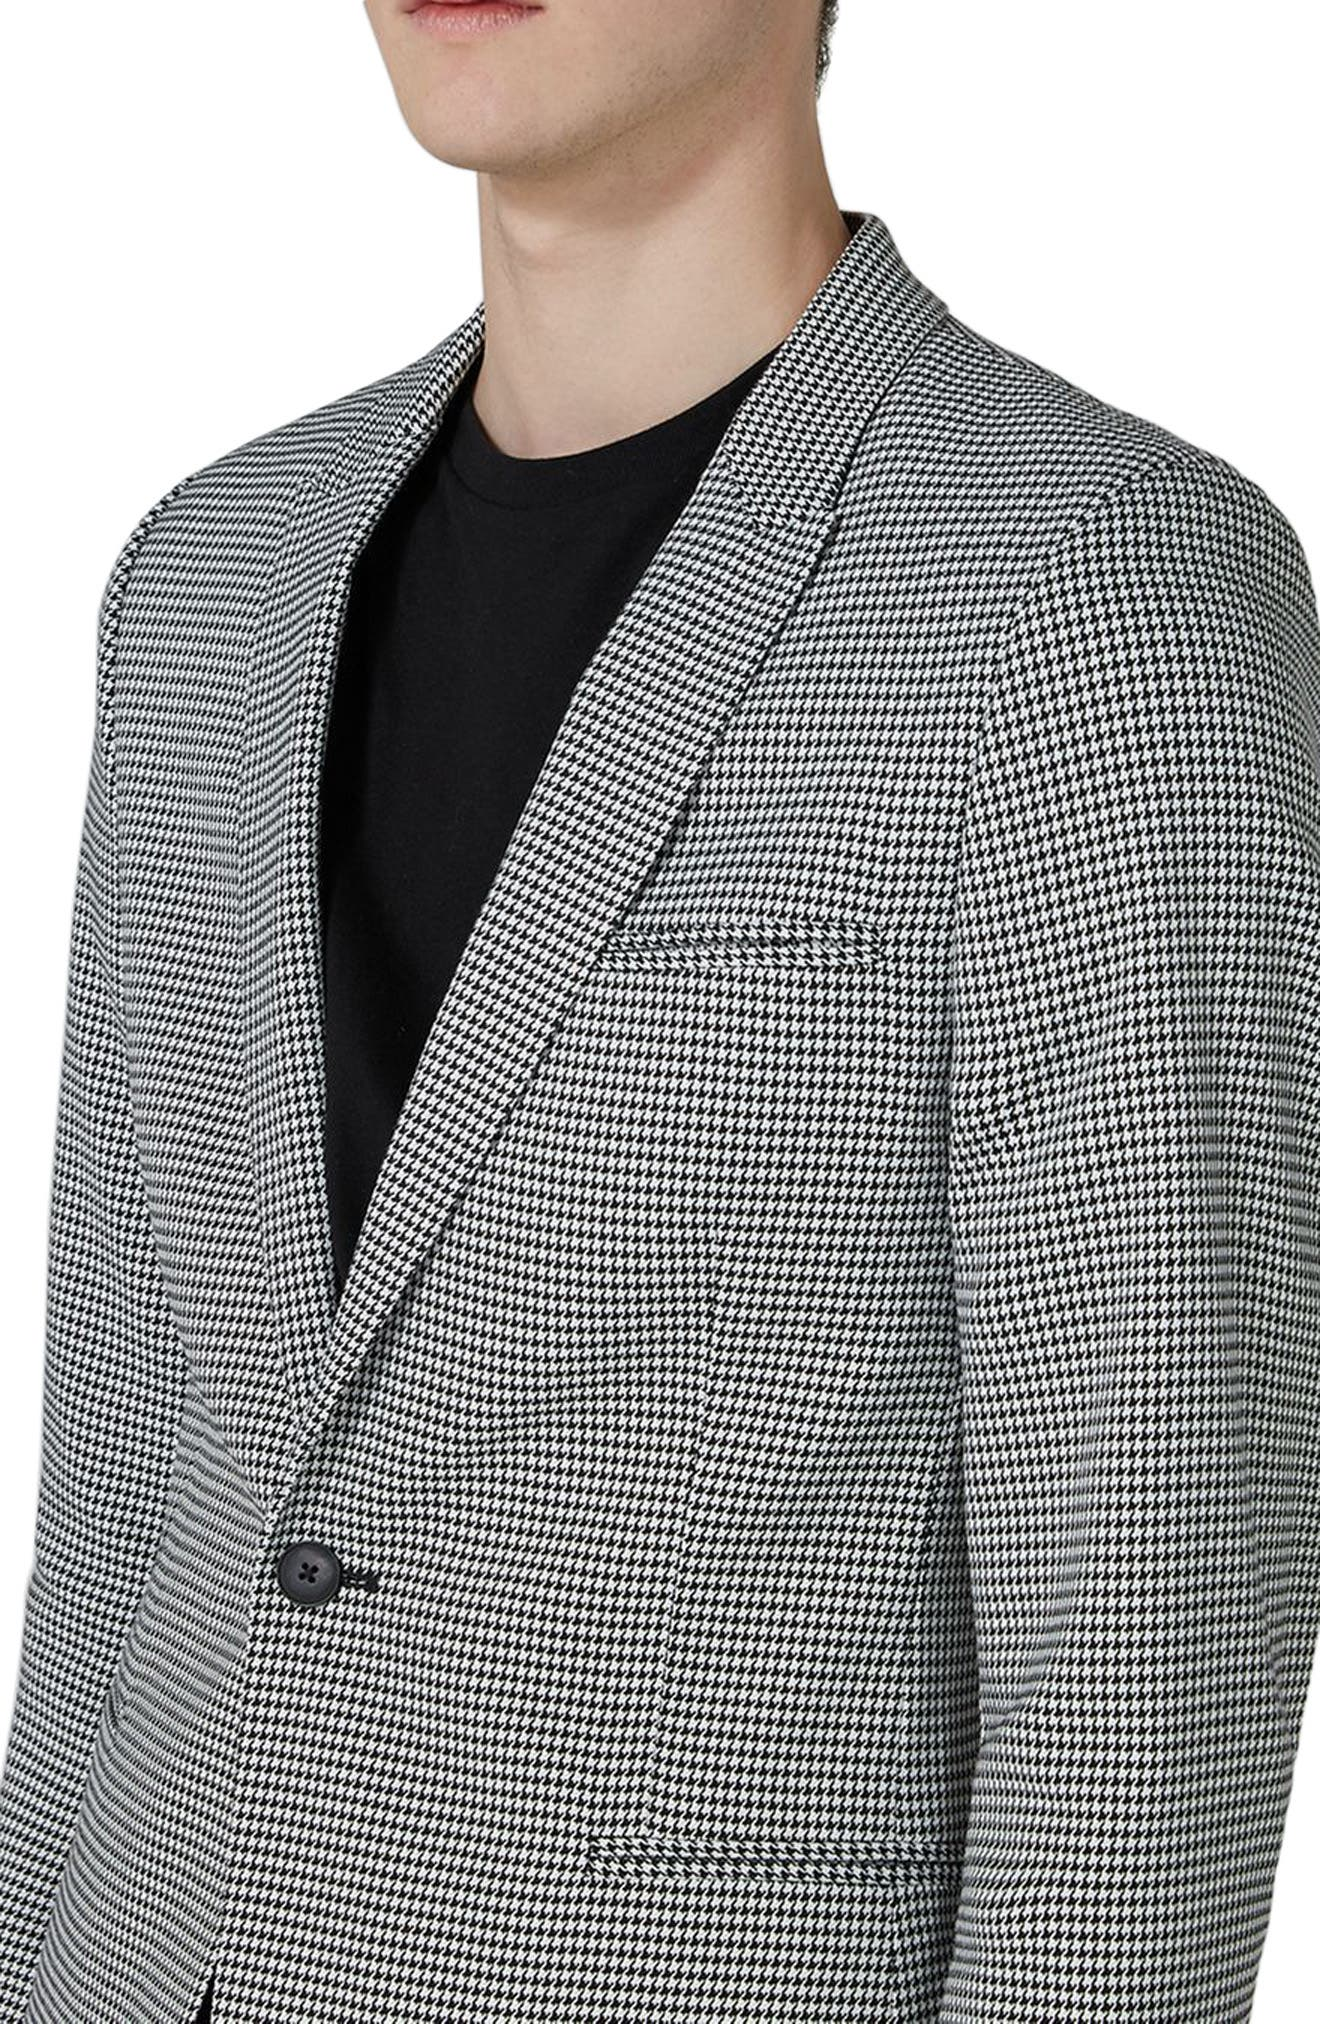 Ultra Skinny Fit Houndstooth Suit Jacket,                             Alternate thumbnail 3, color,                             020